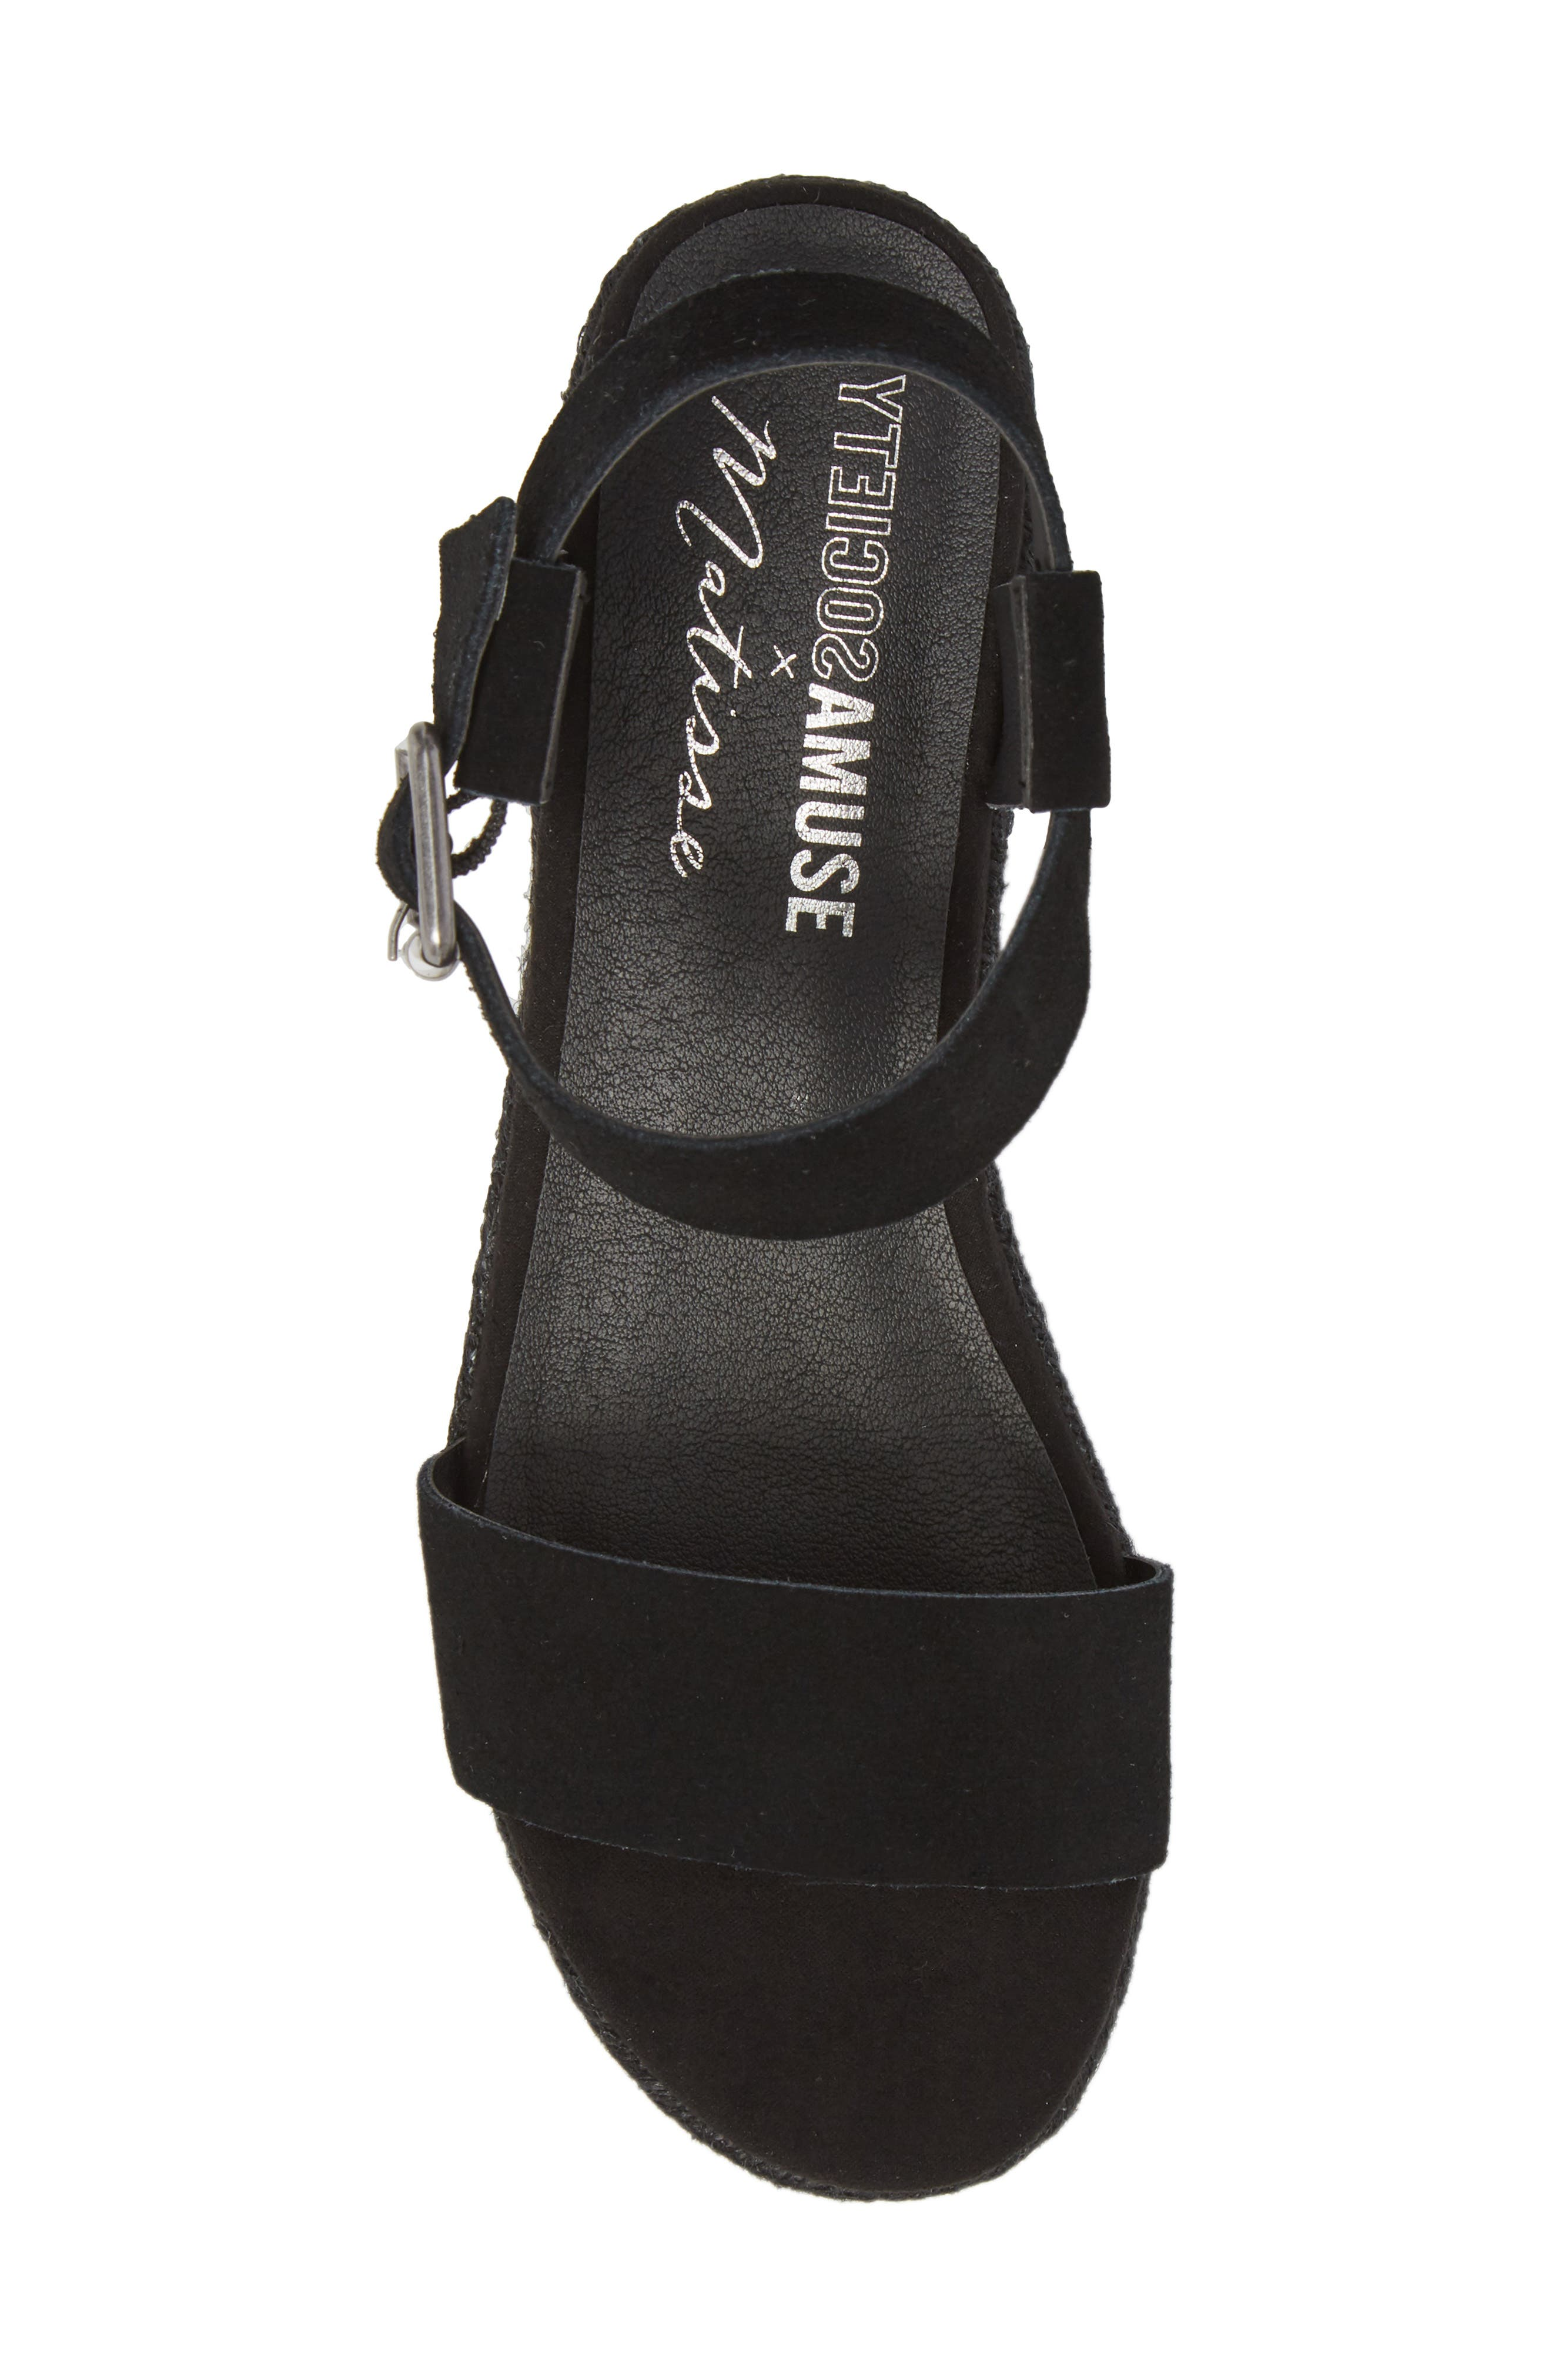 Amuse Society x Matisse Siena Wedge Sandal,                             Alternate thumbnail 5, color,                             017